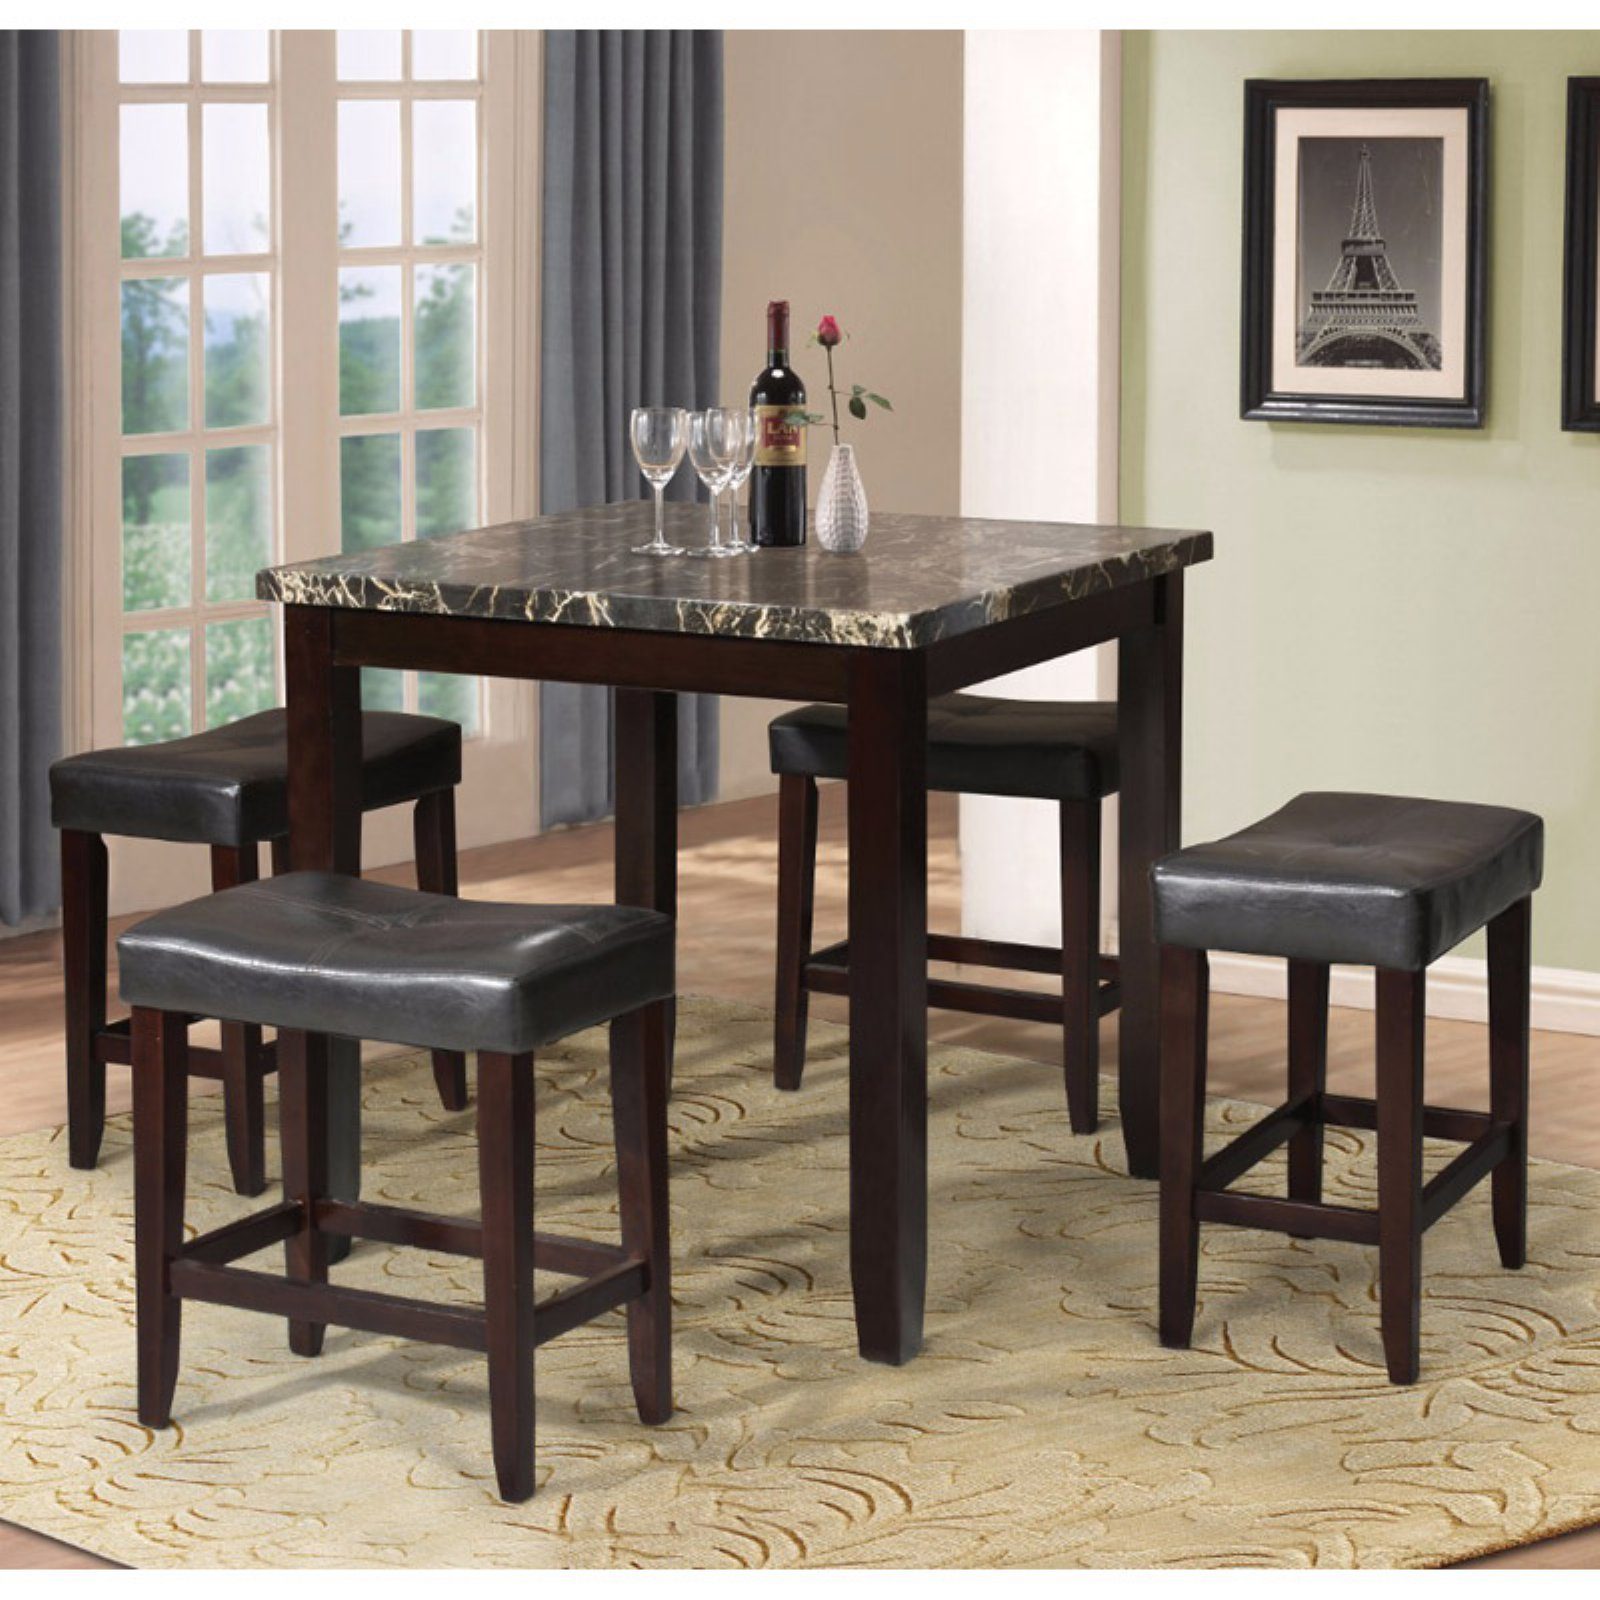 Berrios 3 Piece Counter Height Dining Sets Regarding Well Known Benzara Modish 5 Piece Faux Marble Counter Height Dining Table Set (View 13 of 20)